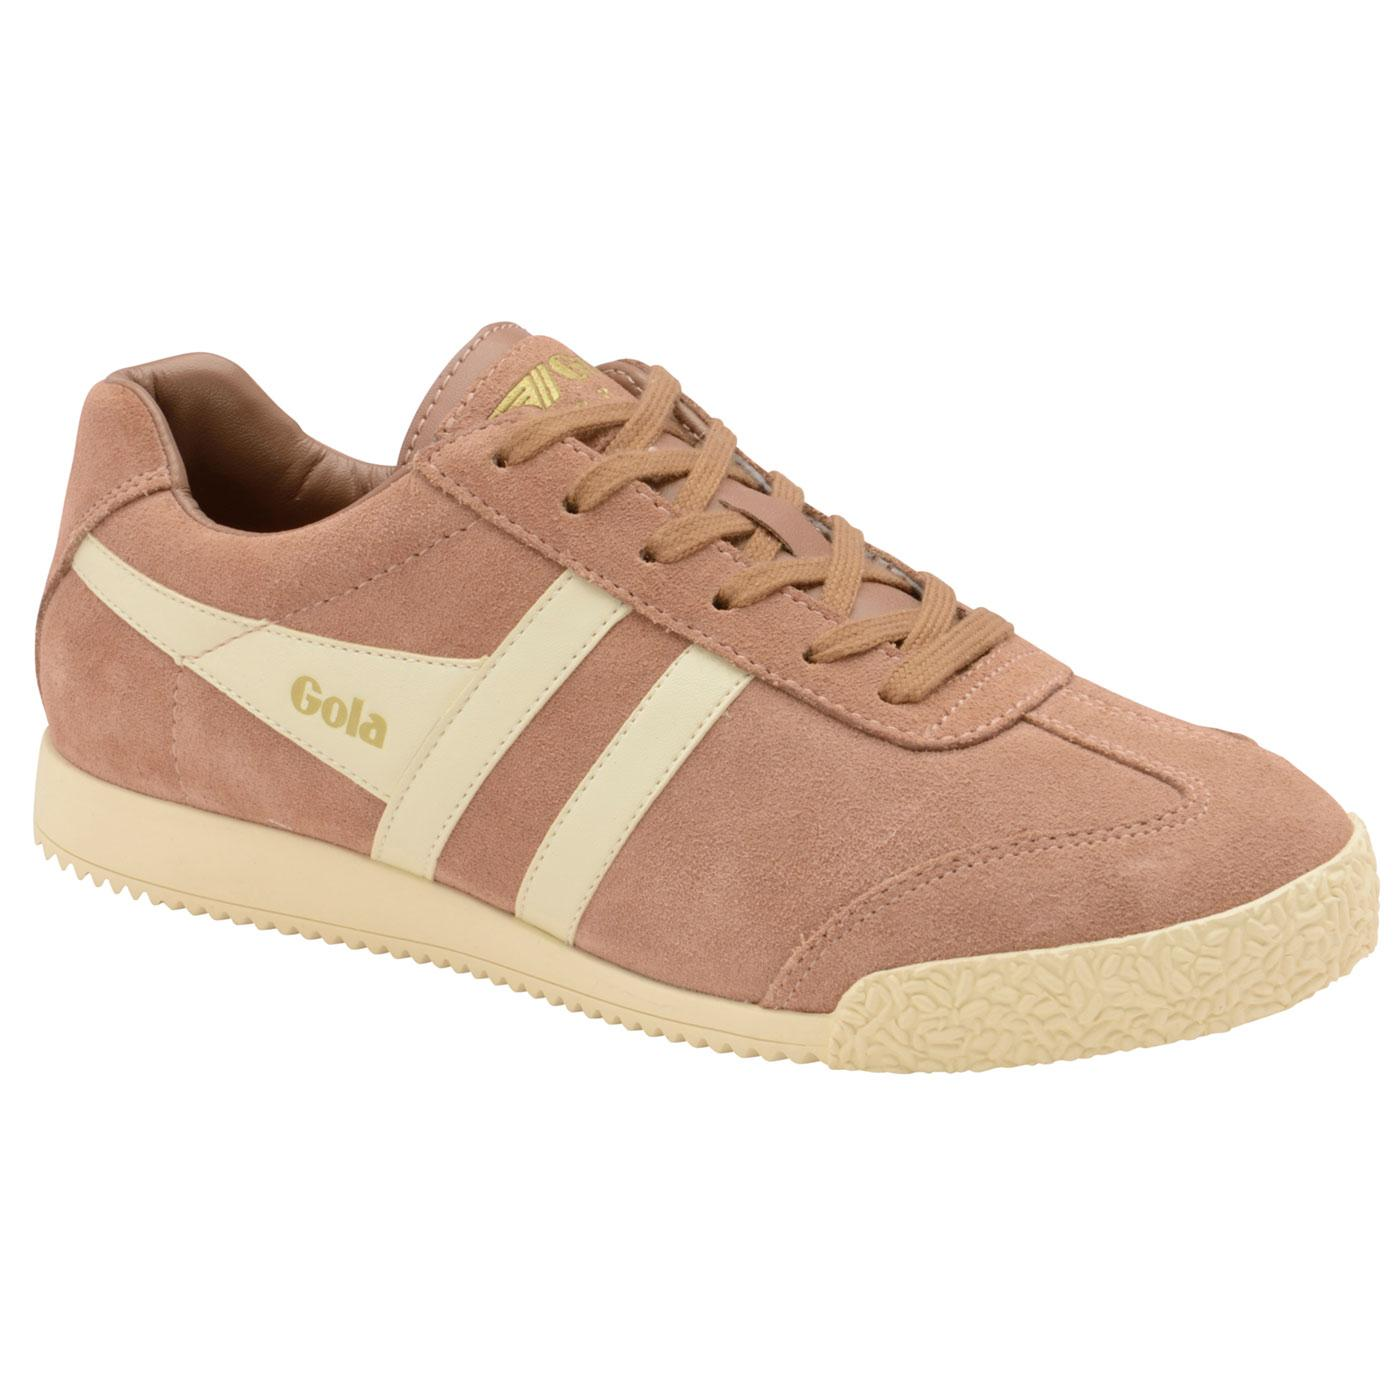 GOLA Harrier Suede Womens Retro 70s Trainers PINK